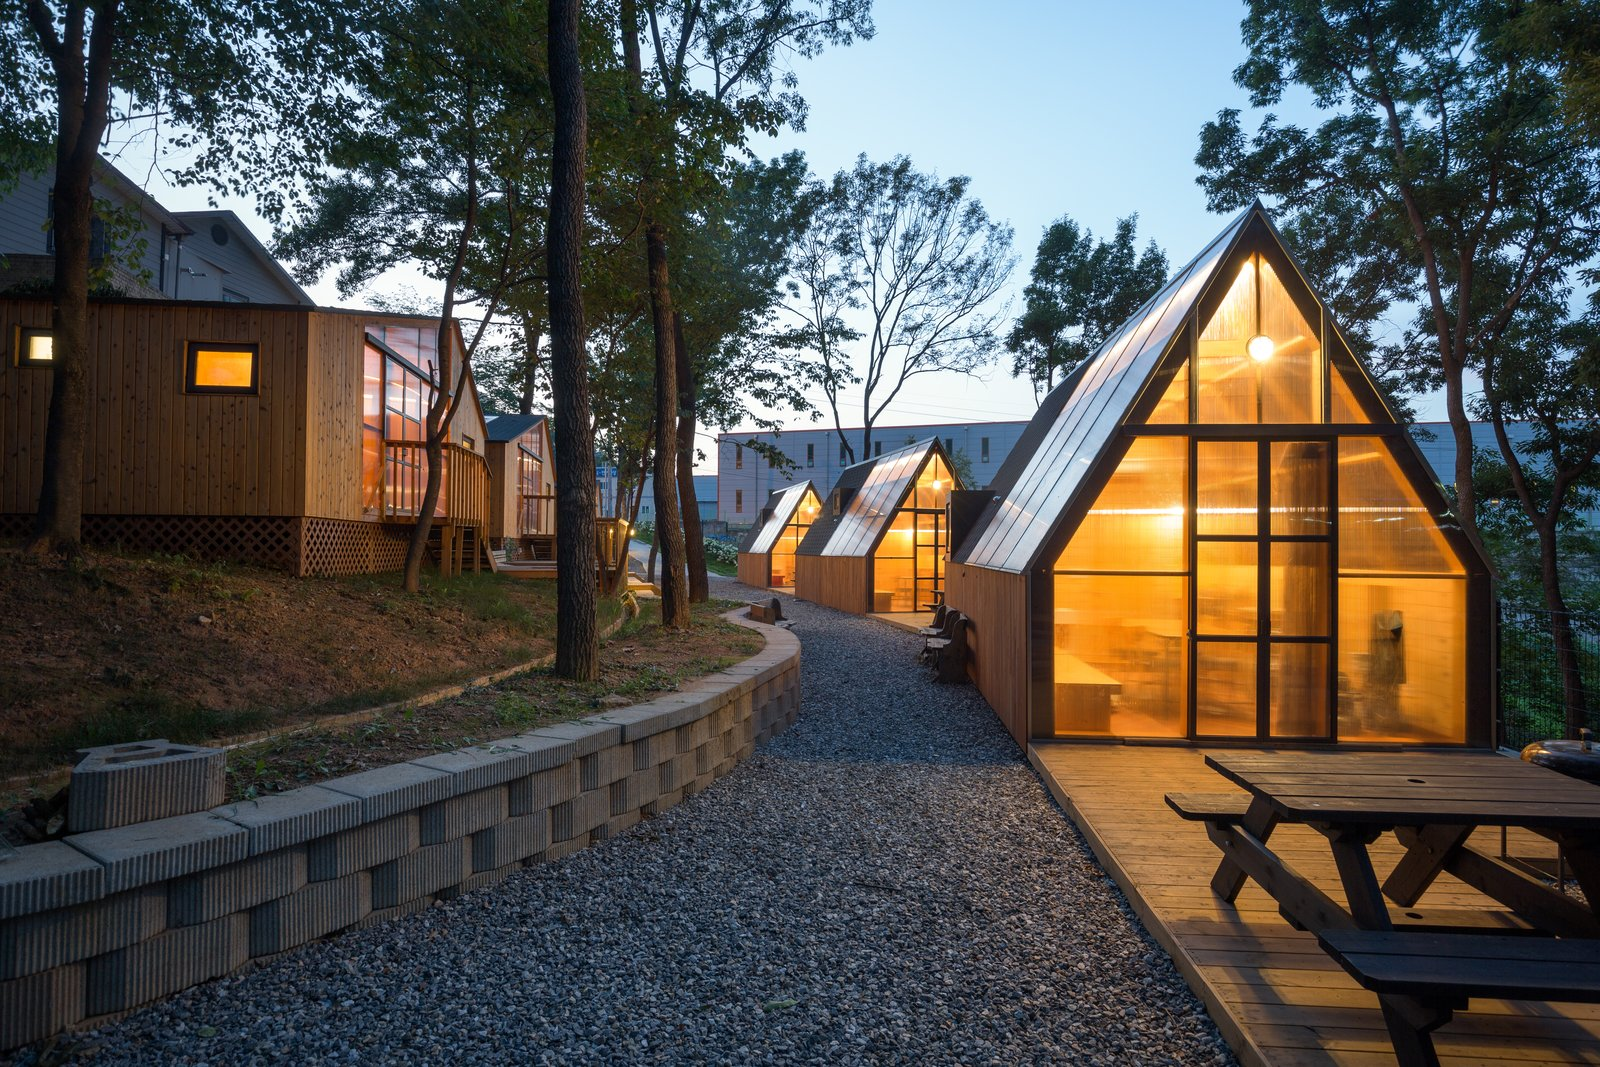 A Camping Village in South Korea Draws Inspiration From an Iconic Fairy Tale - Photo 3 of 11